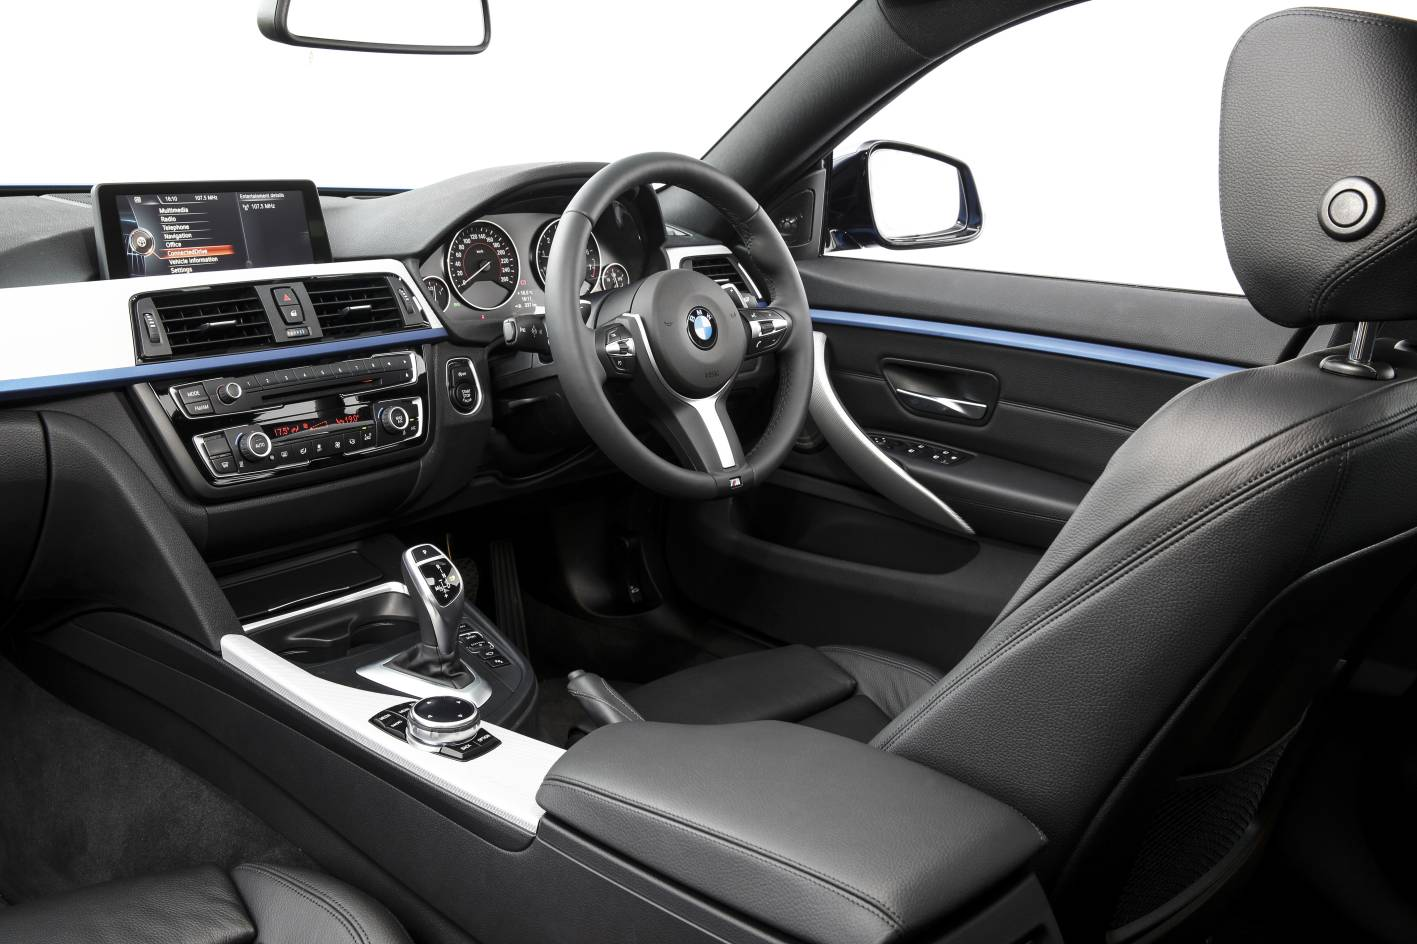 BMW Cars News Series Gran Coupé Pricing And Specifications - 2014 bmw 4 series gran coupe price